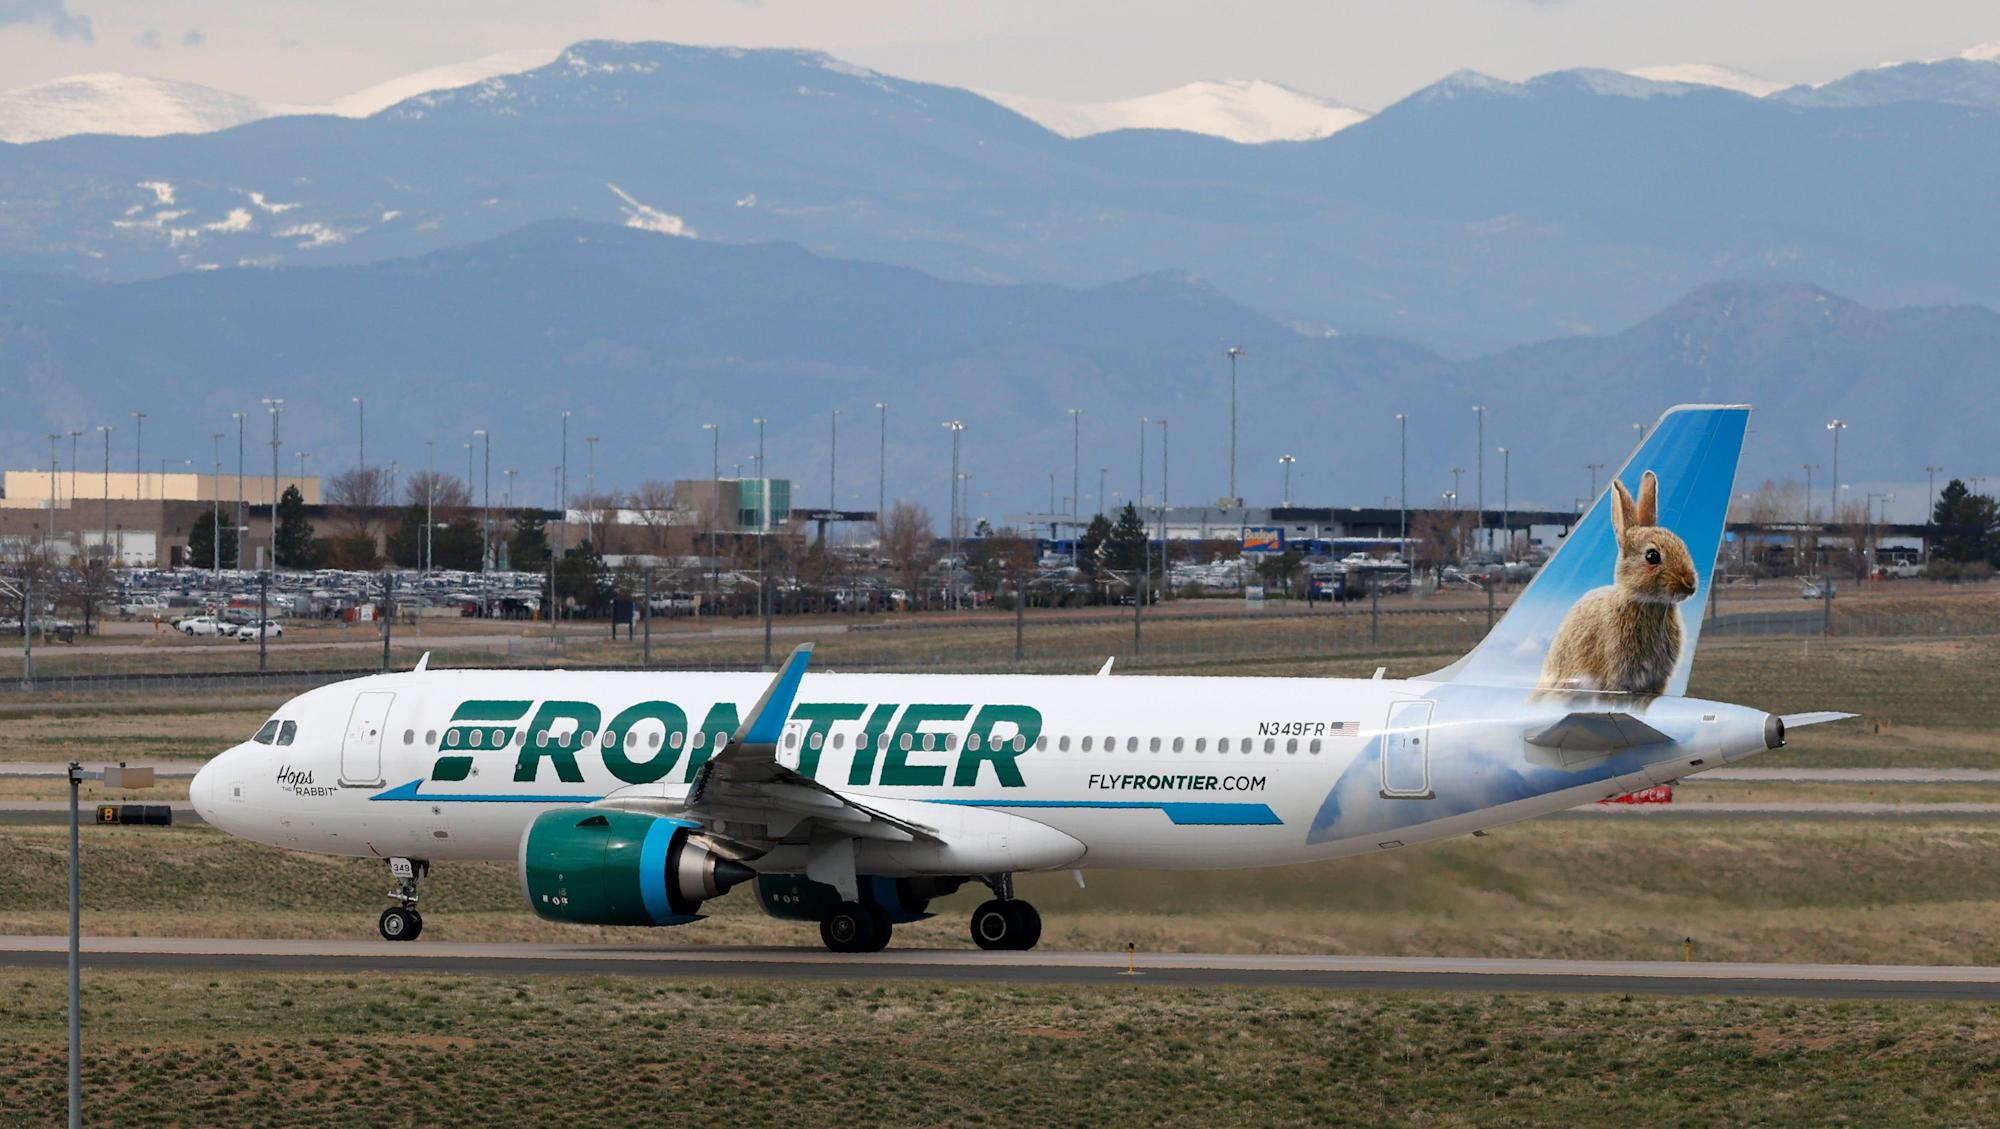 Passenger taped to seat after allegedly groping, punching Frontier Airlines crew